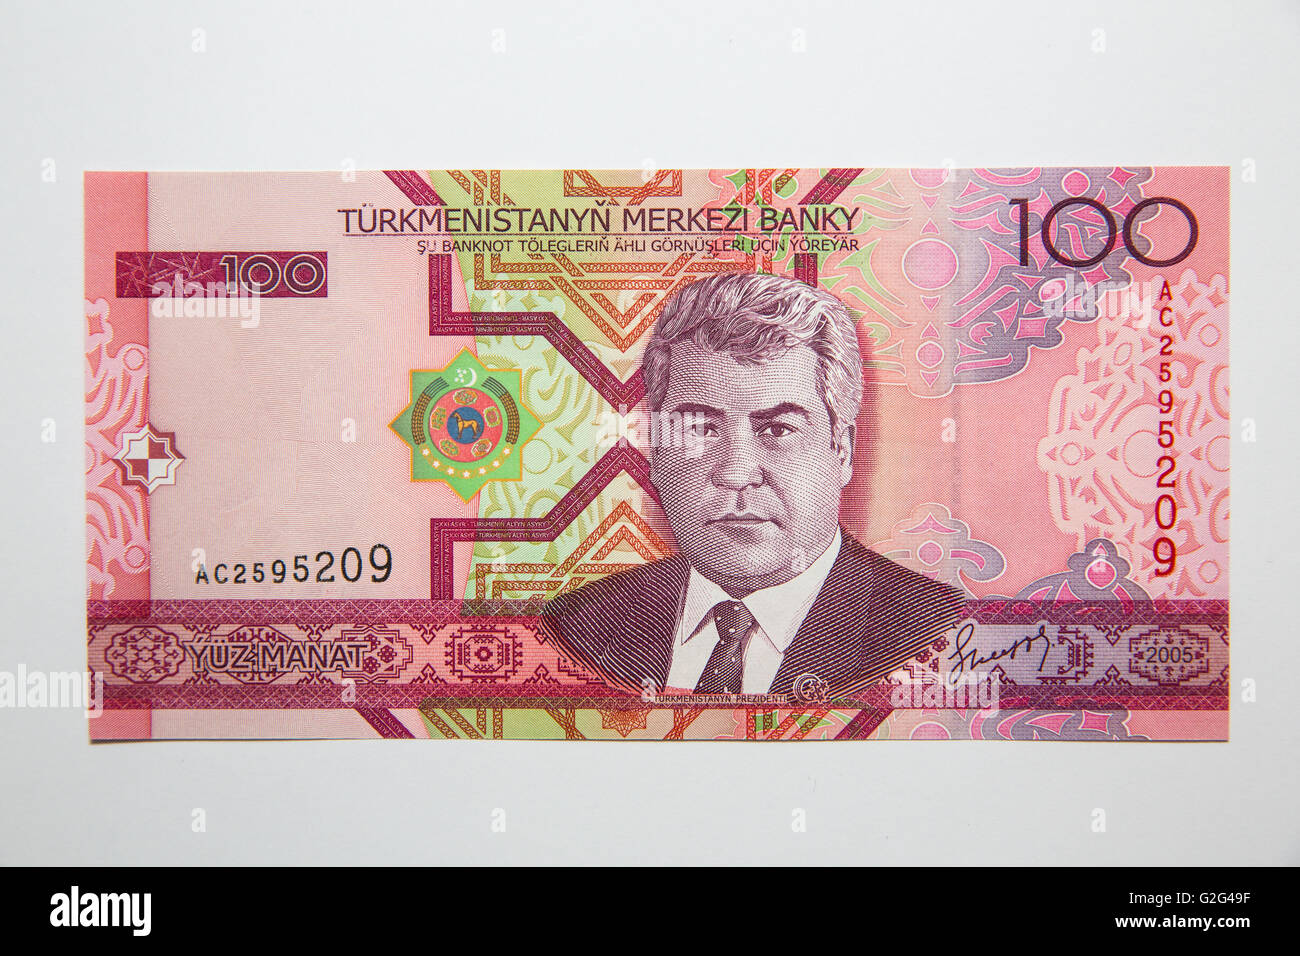 The front of the Turkmenistan 100 note featuring Niazov - Stock Image